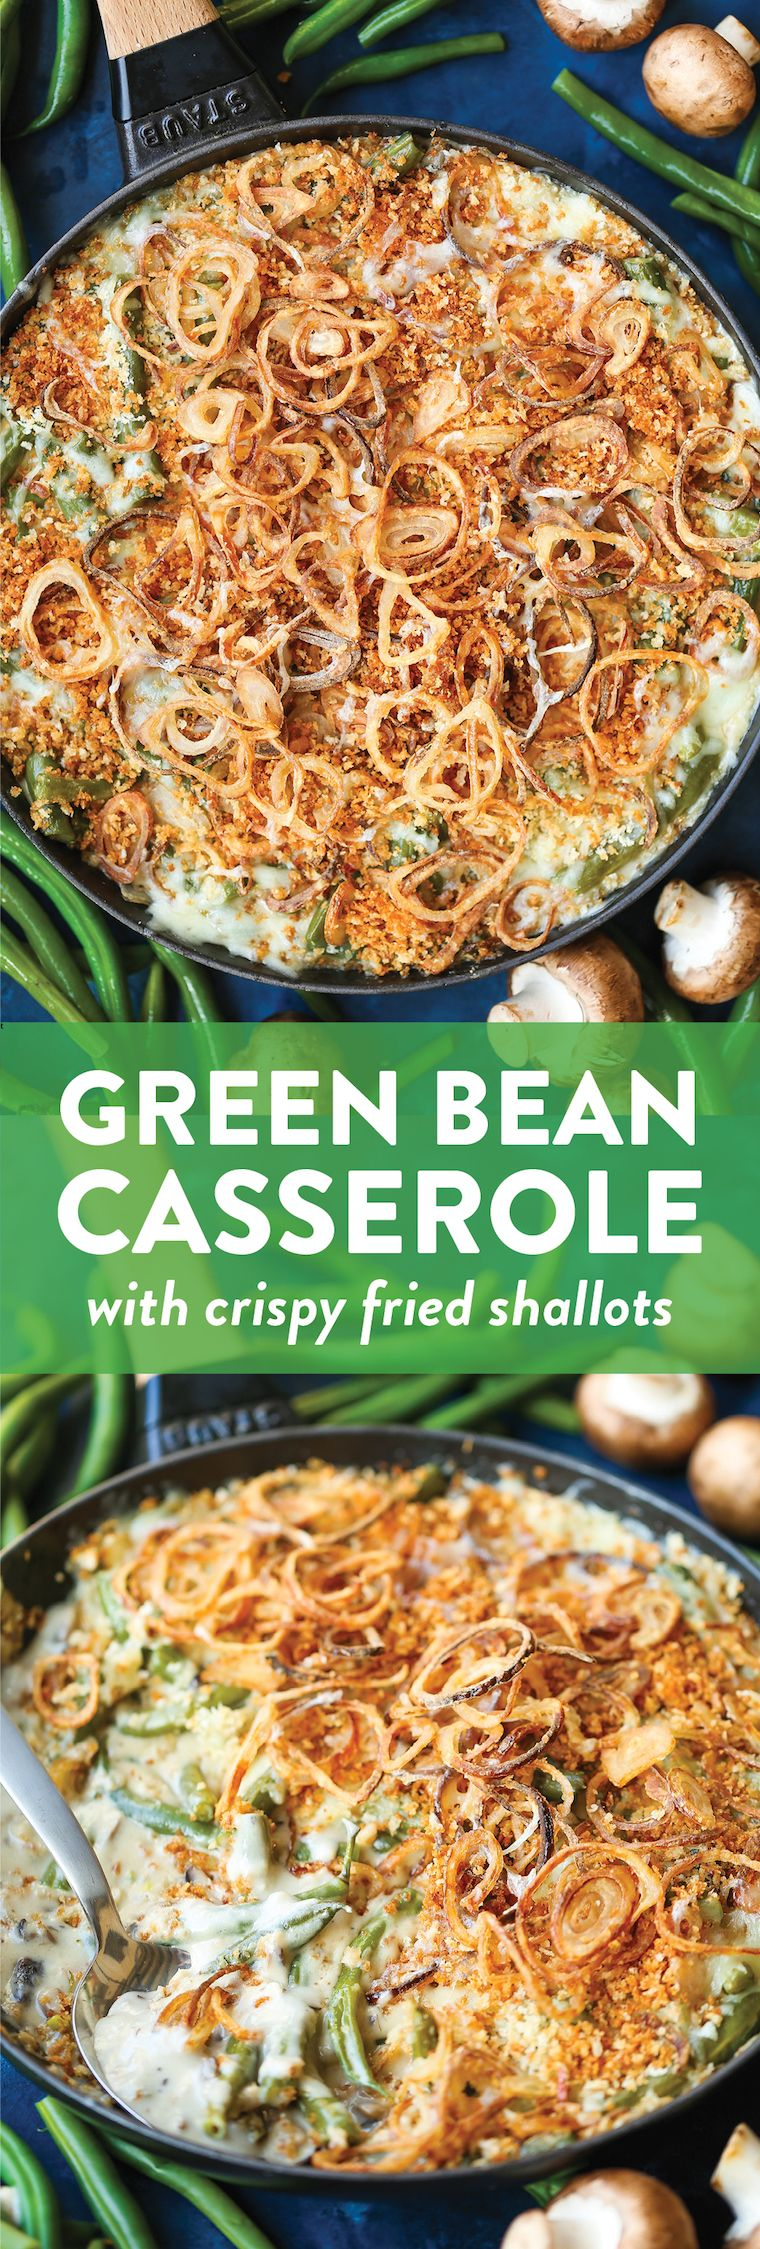 Green Bean Casserole with Crispy Fried Shallots images